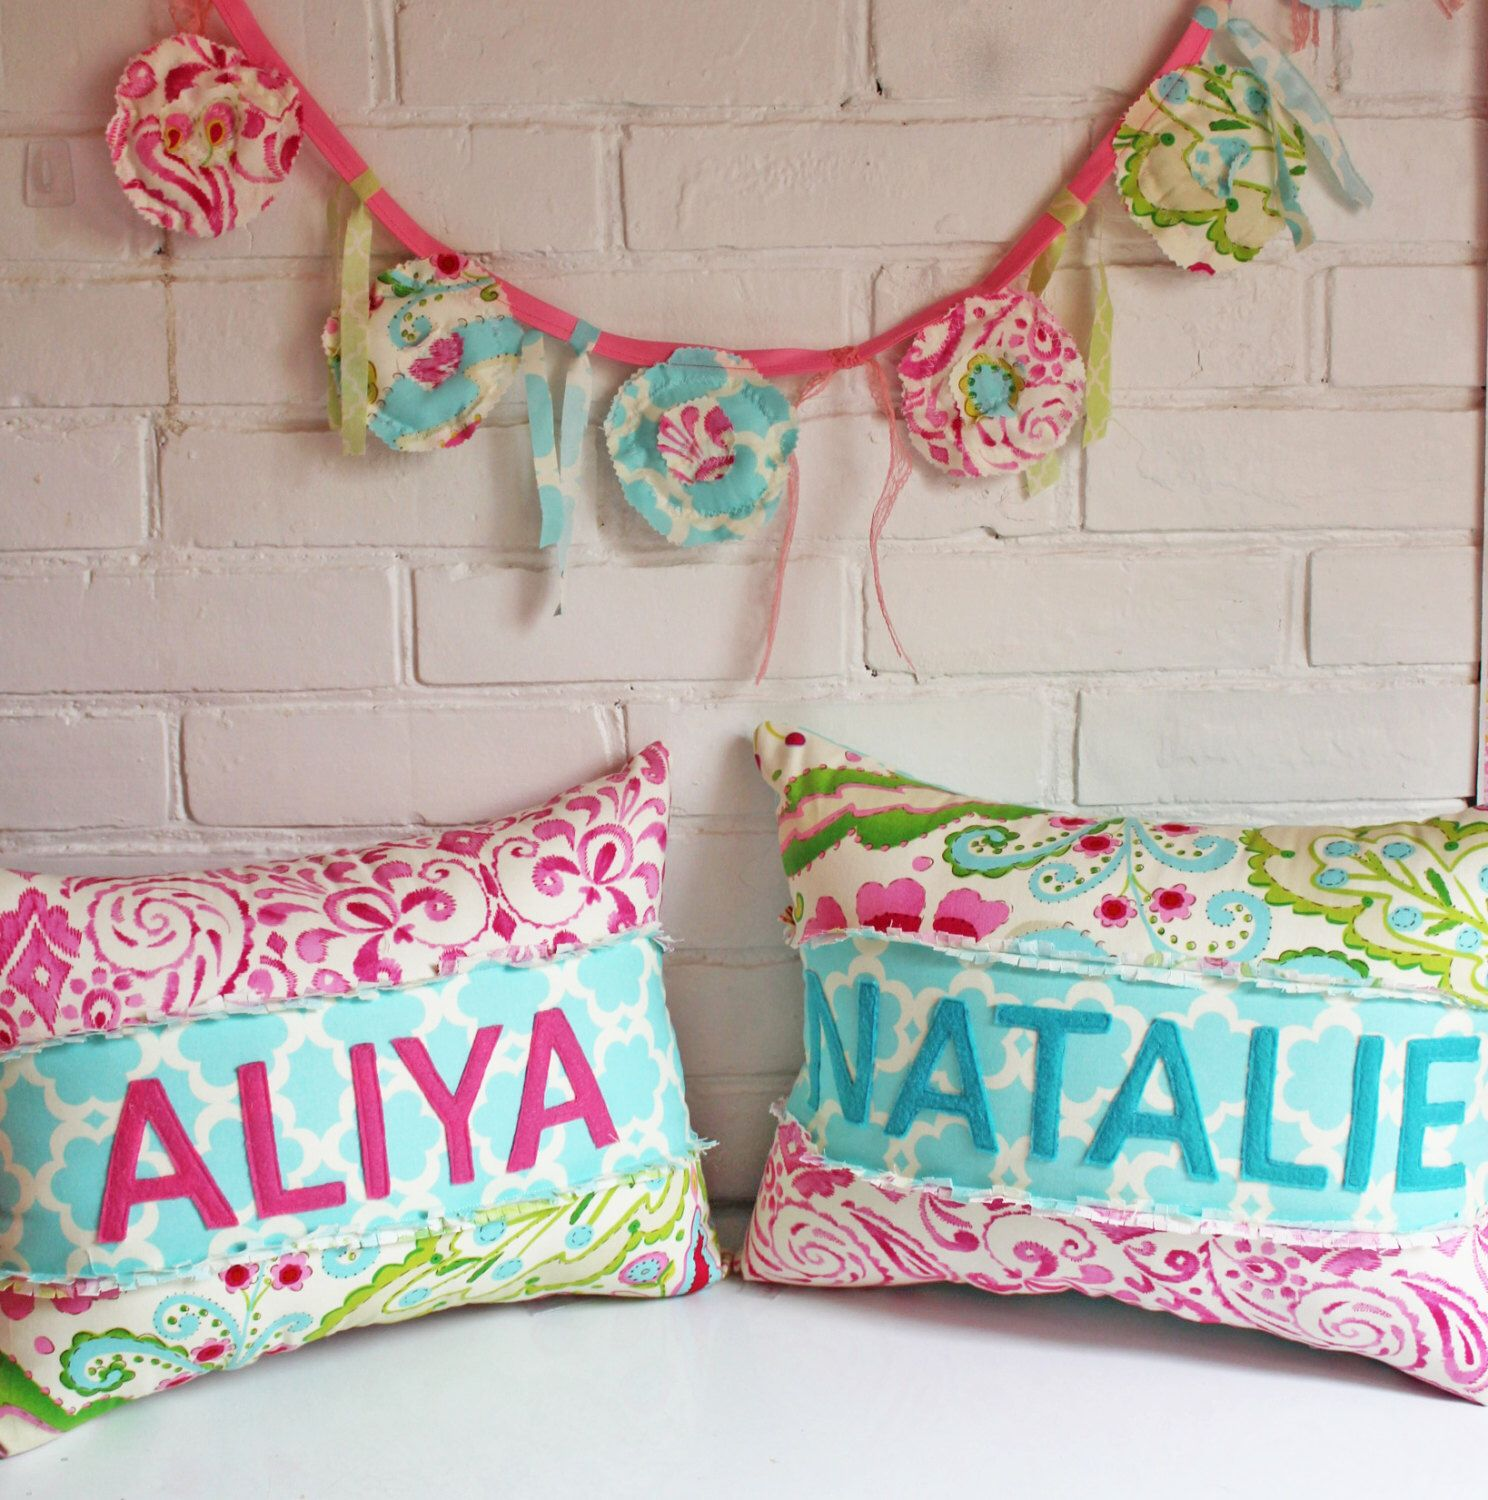 Sweet Word Love Pillow Or Personalized Name Pillow Made In With Kumari  Garden Fabric In A Rag Patchwork Style! Comes All Ready Stuffed!